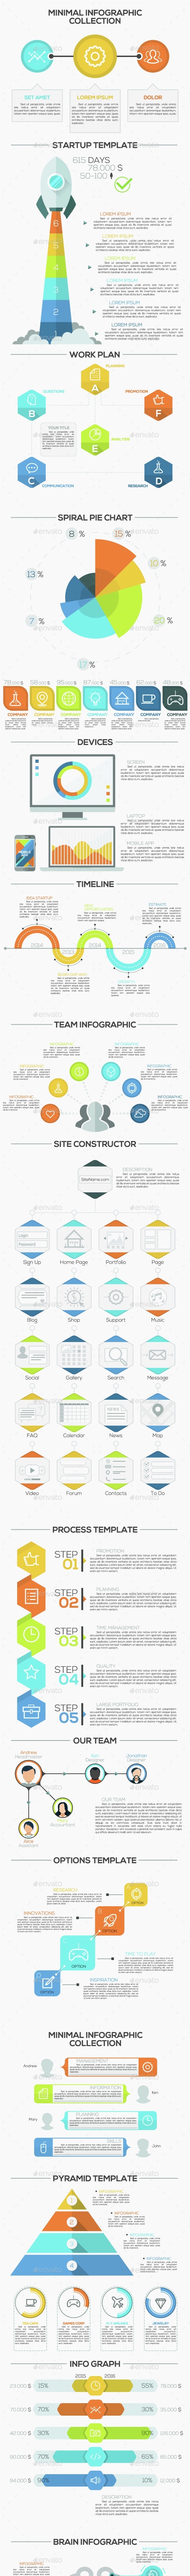 Minimal Infographic Pack - Infographics